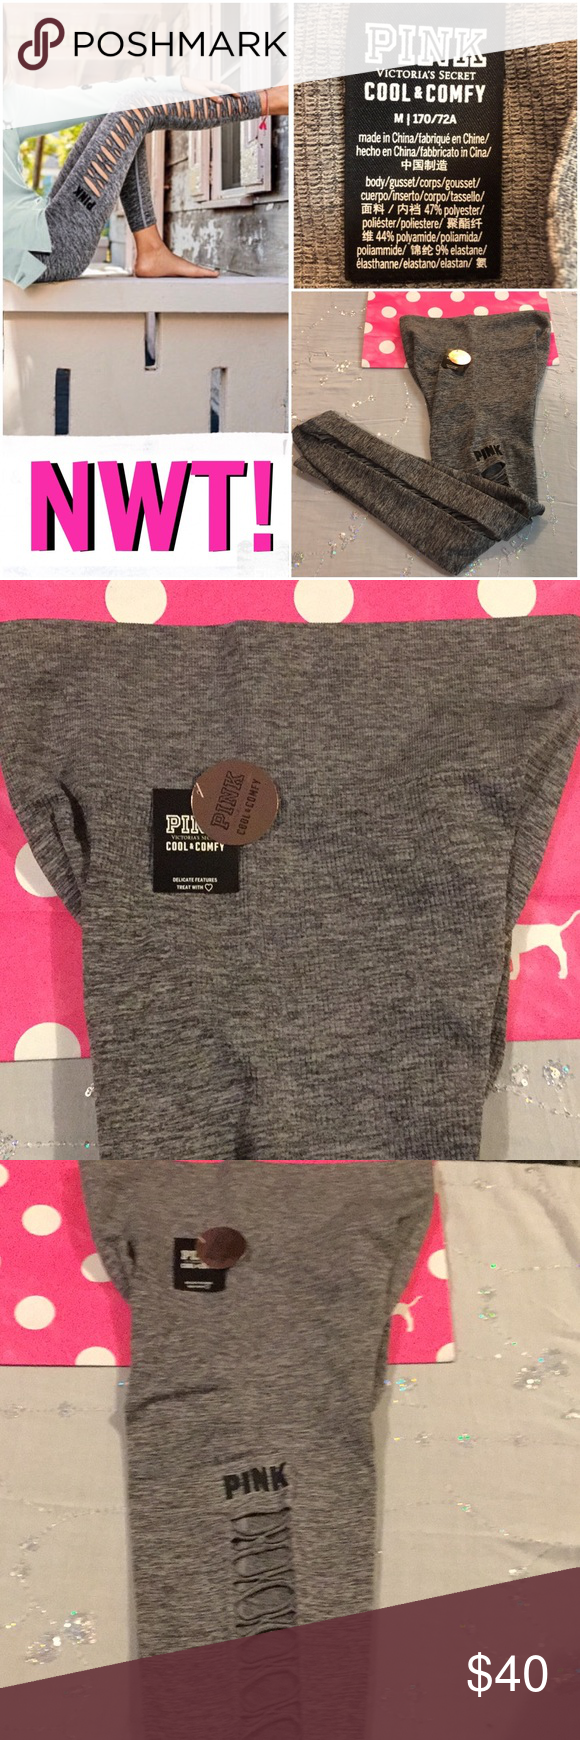 b6e5b38bc49965 NWT! PINK COOL & COMFY CUTOUT TIGHTS NWT! PINK's newest style. These ...